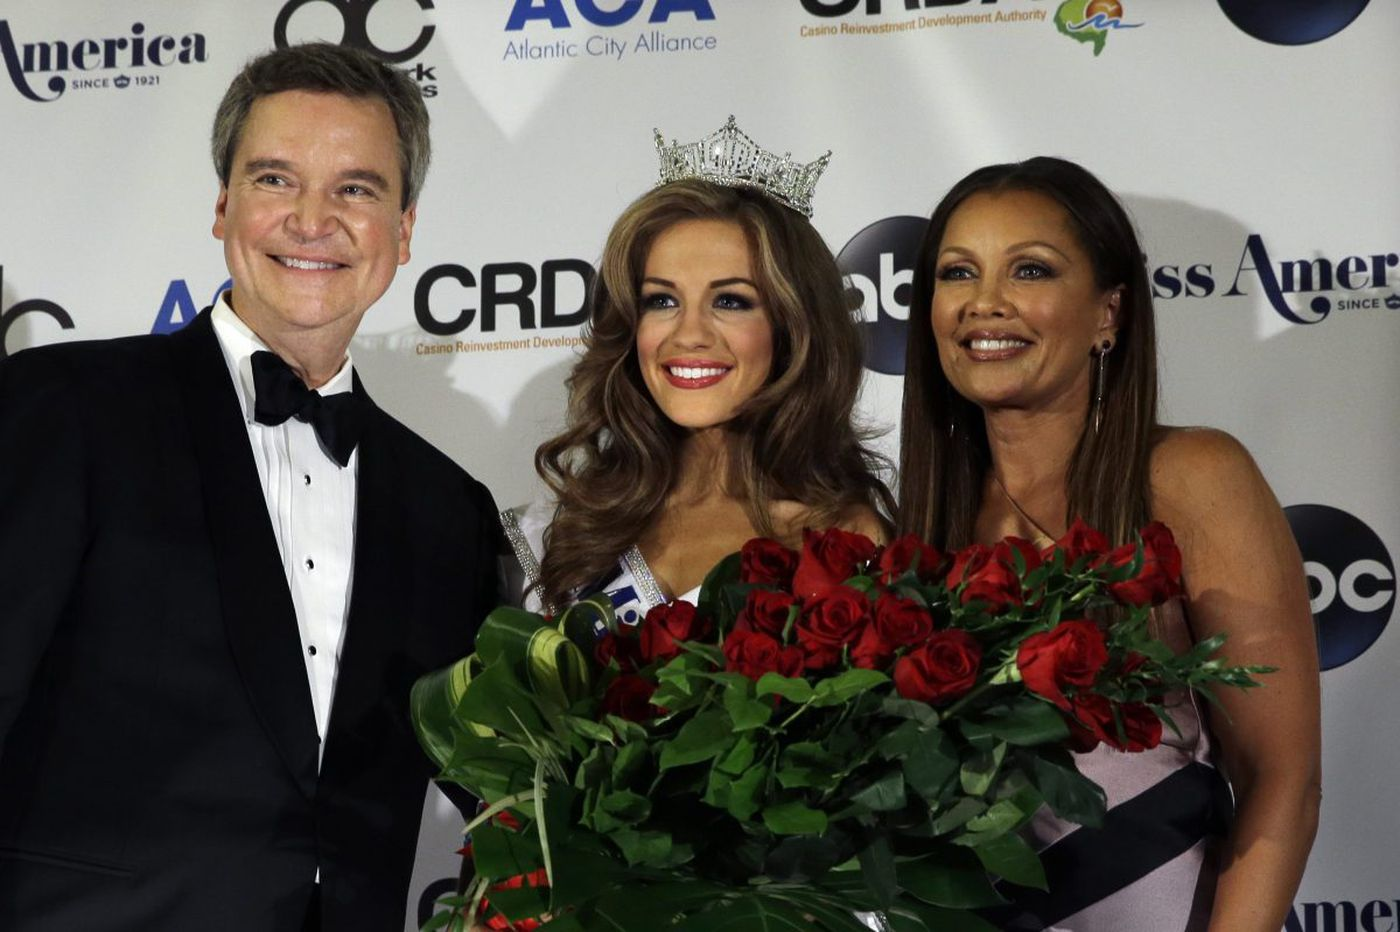 Miss America Organization cleans house: Three executives resign, including CEO